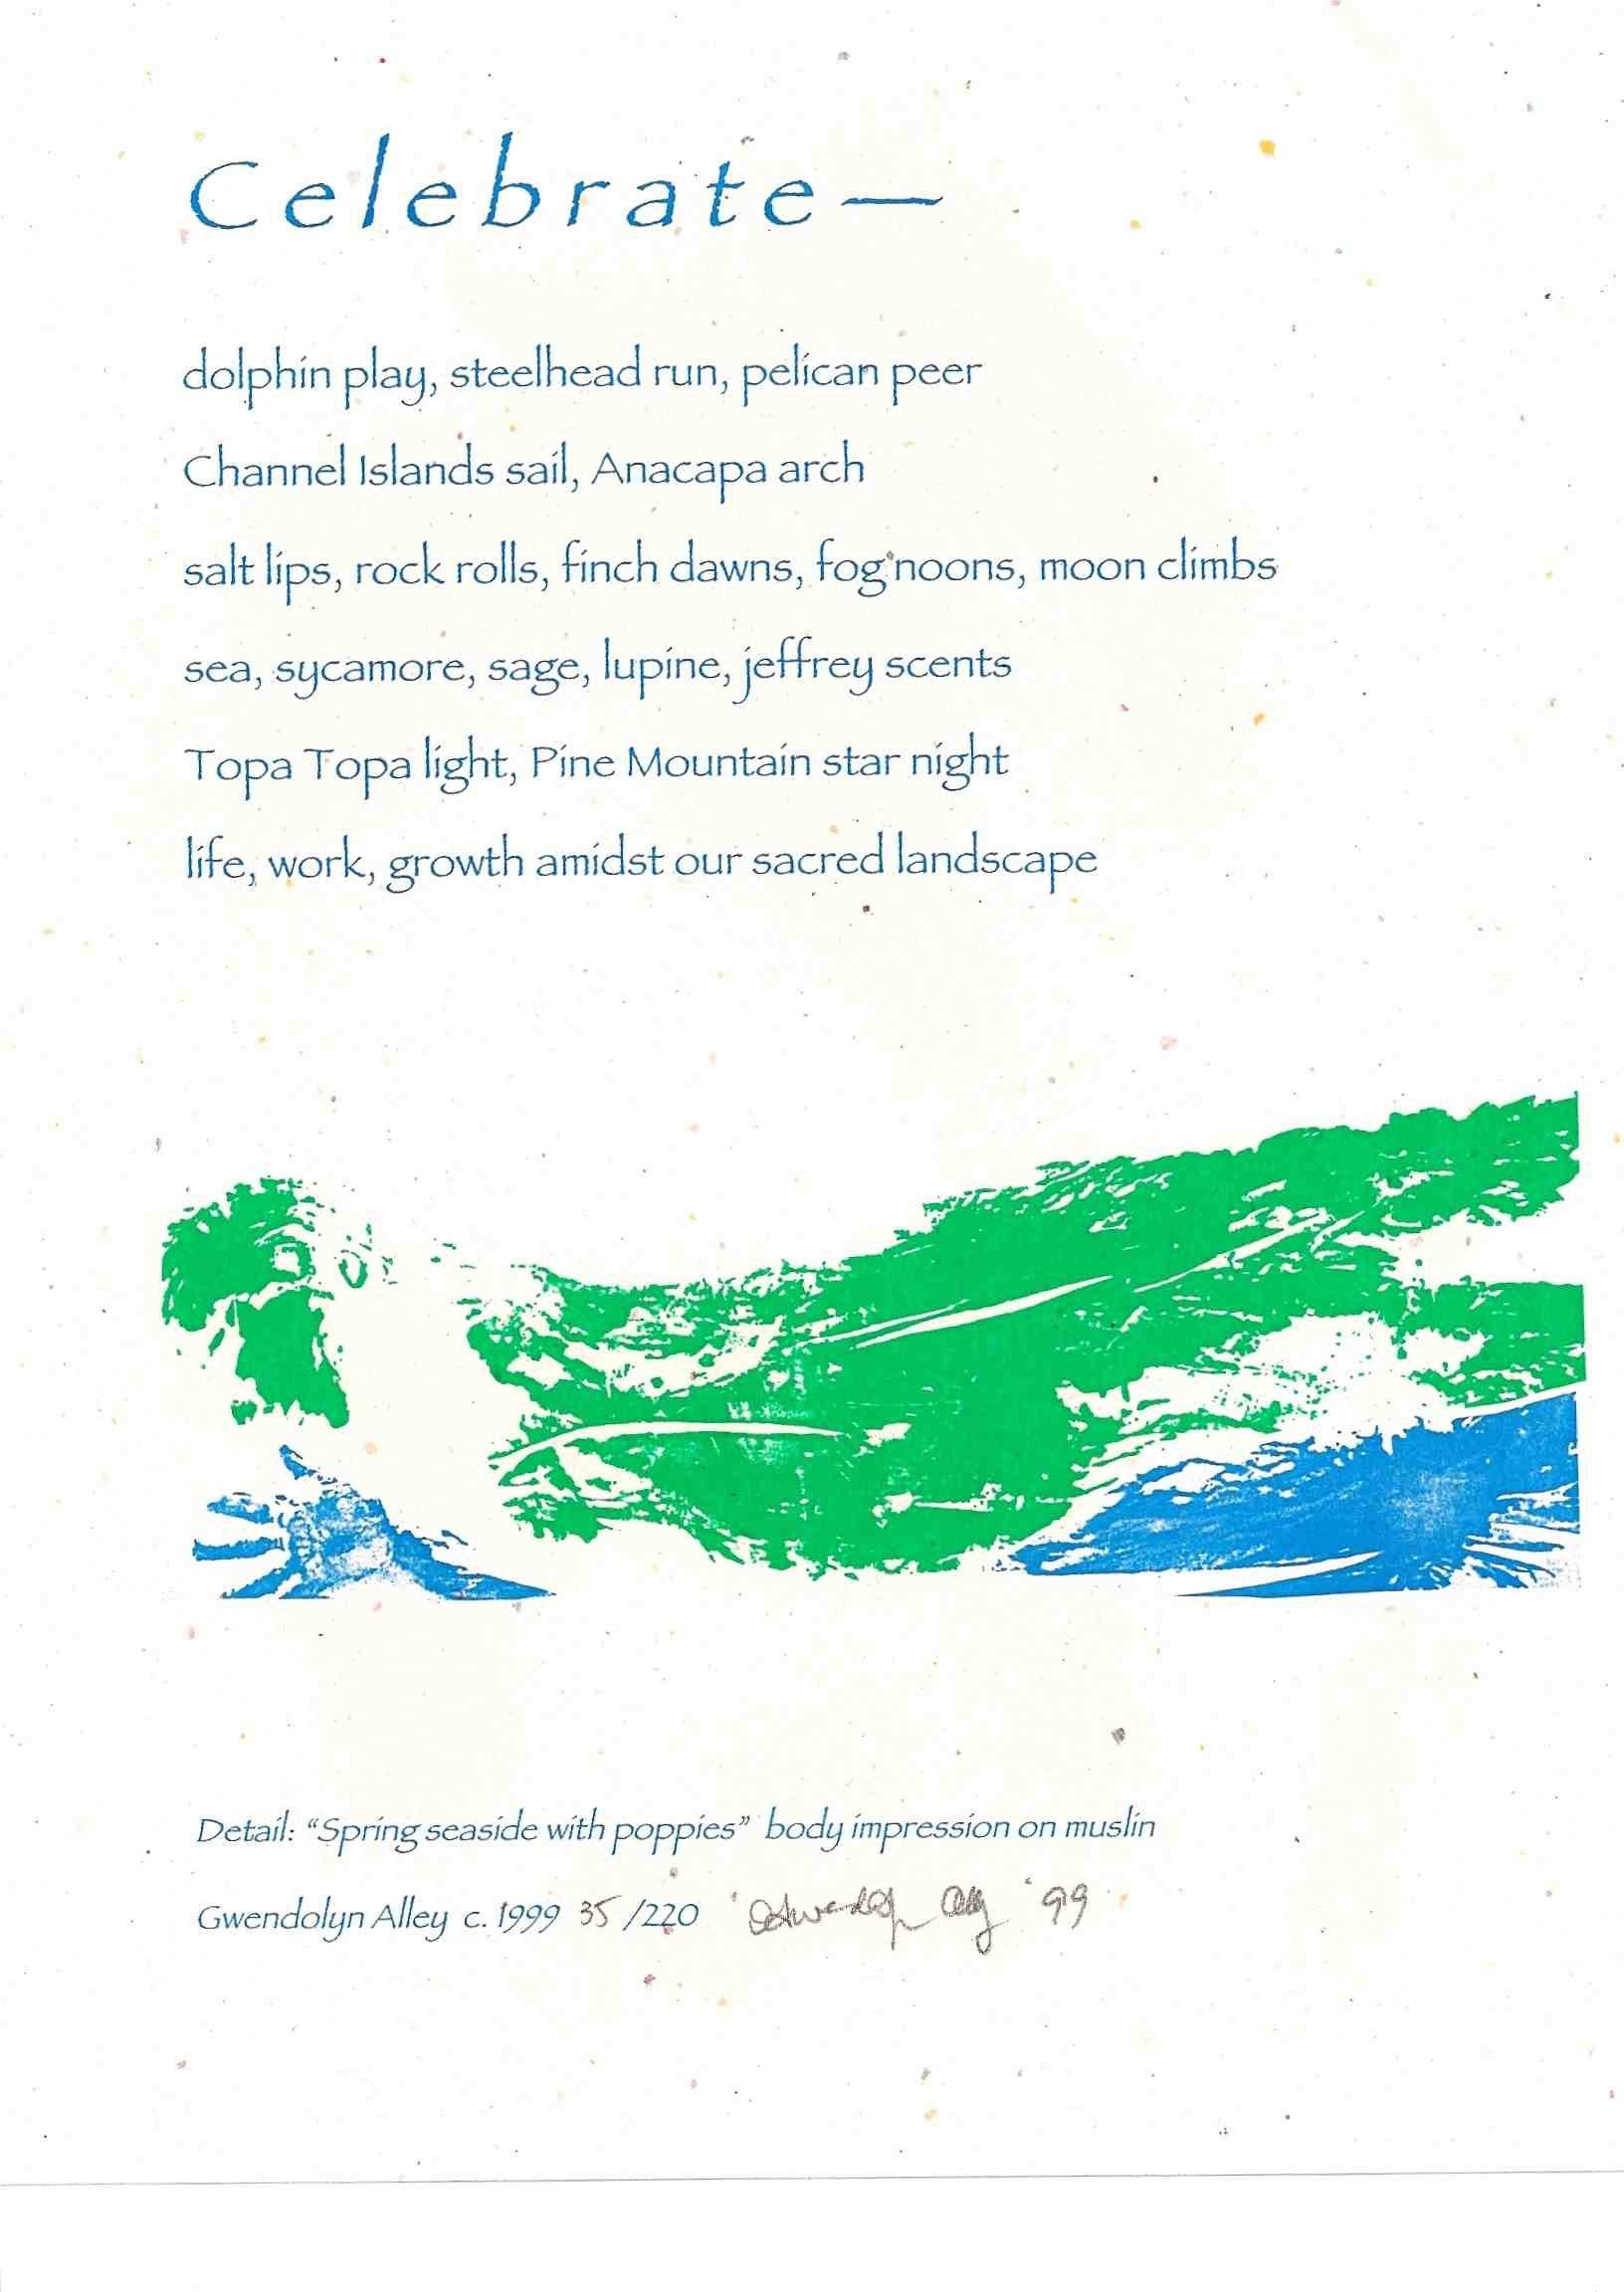 Happy Earth Day! Here's A Poetry Broadside to Celebrate ...